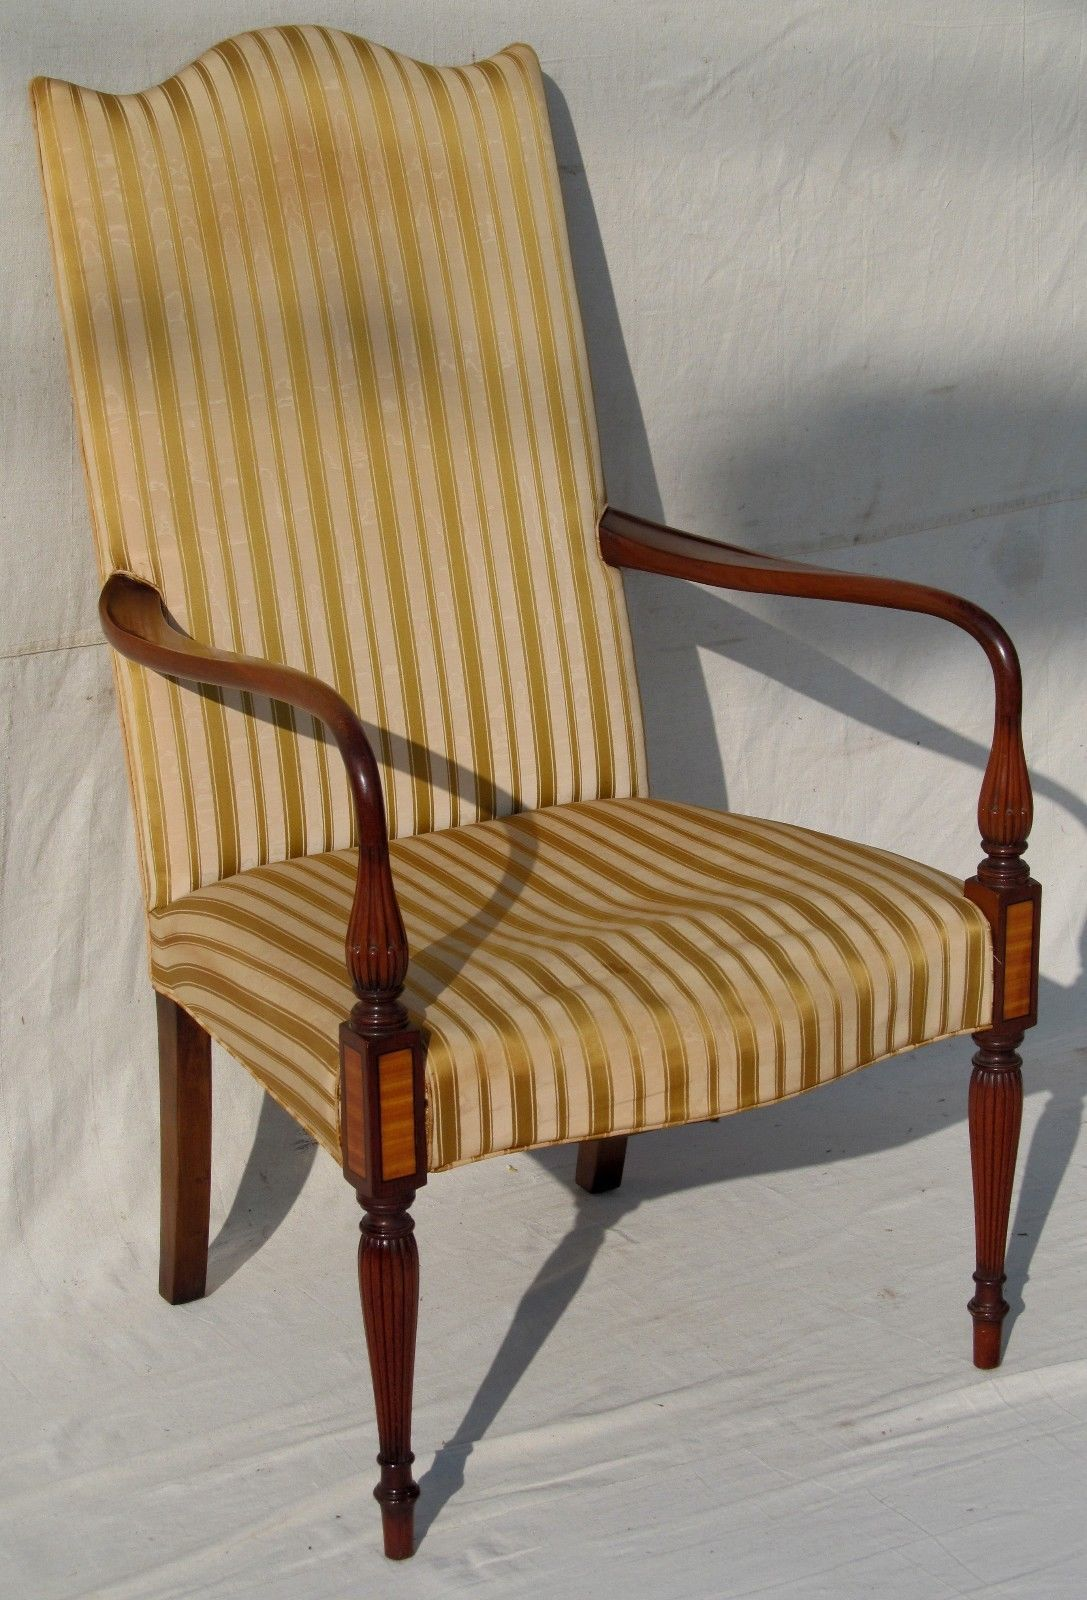 Centennial Sheraton Style Mahogany Lolling Chair With Bold Ebony And  Satinwood Inlaid Panels. Antique Furniture